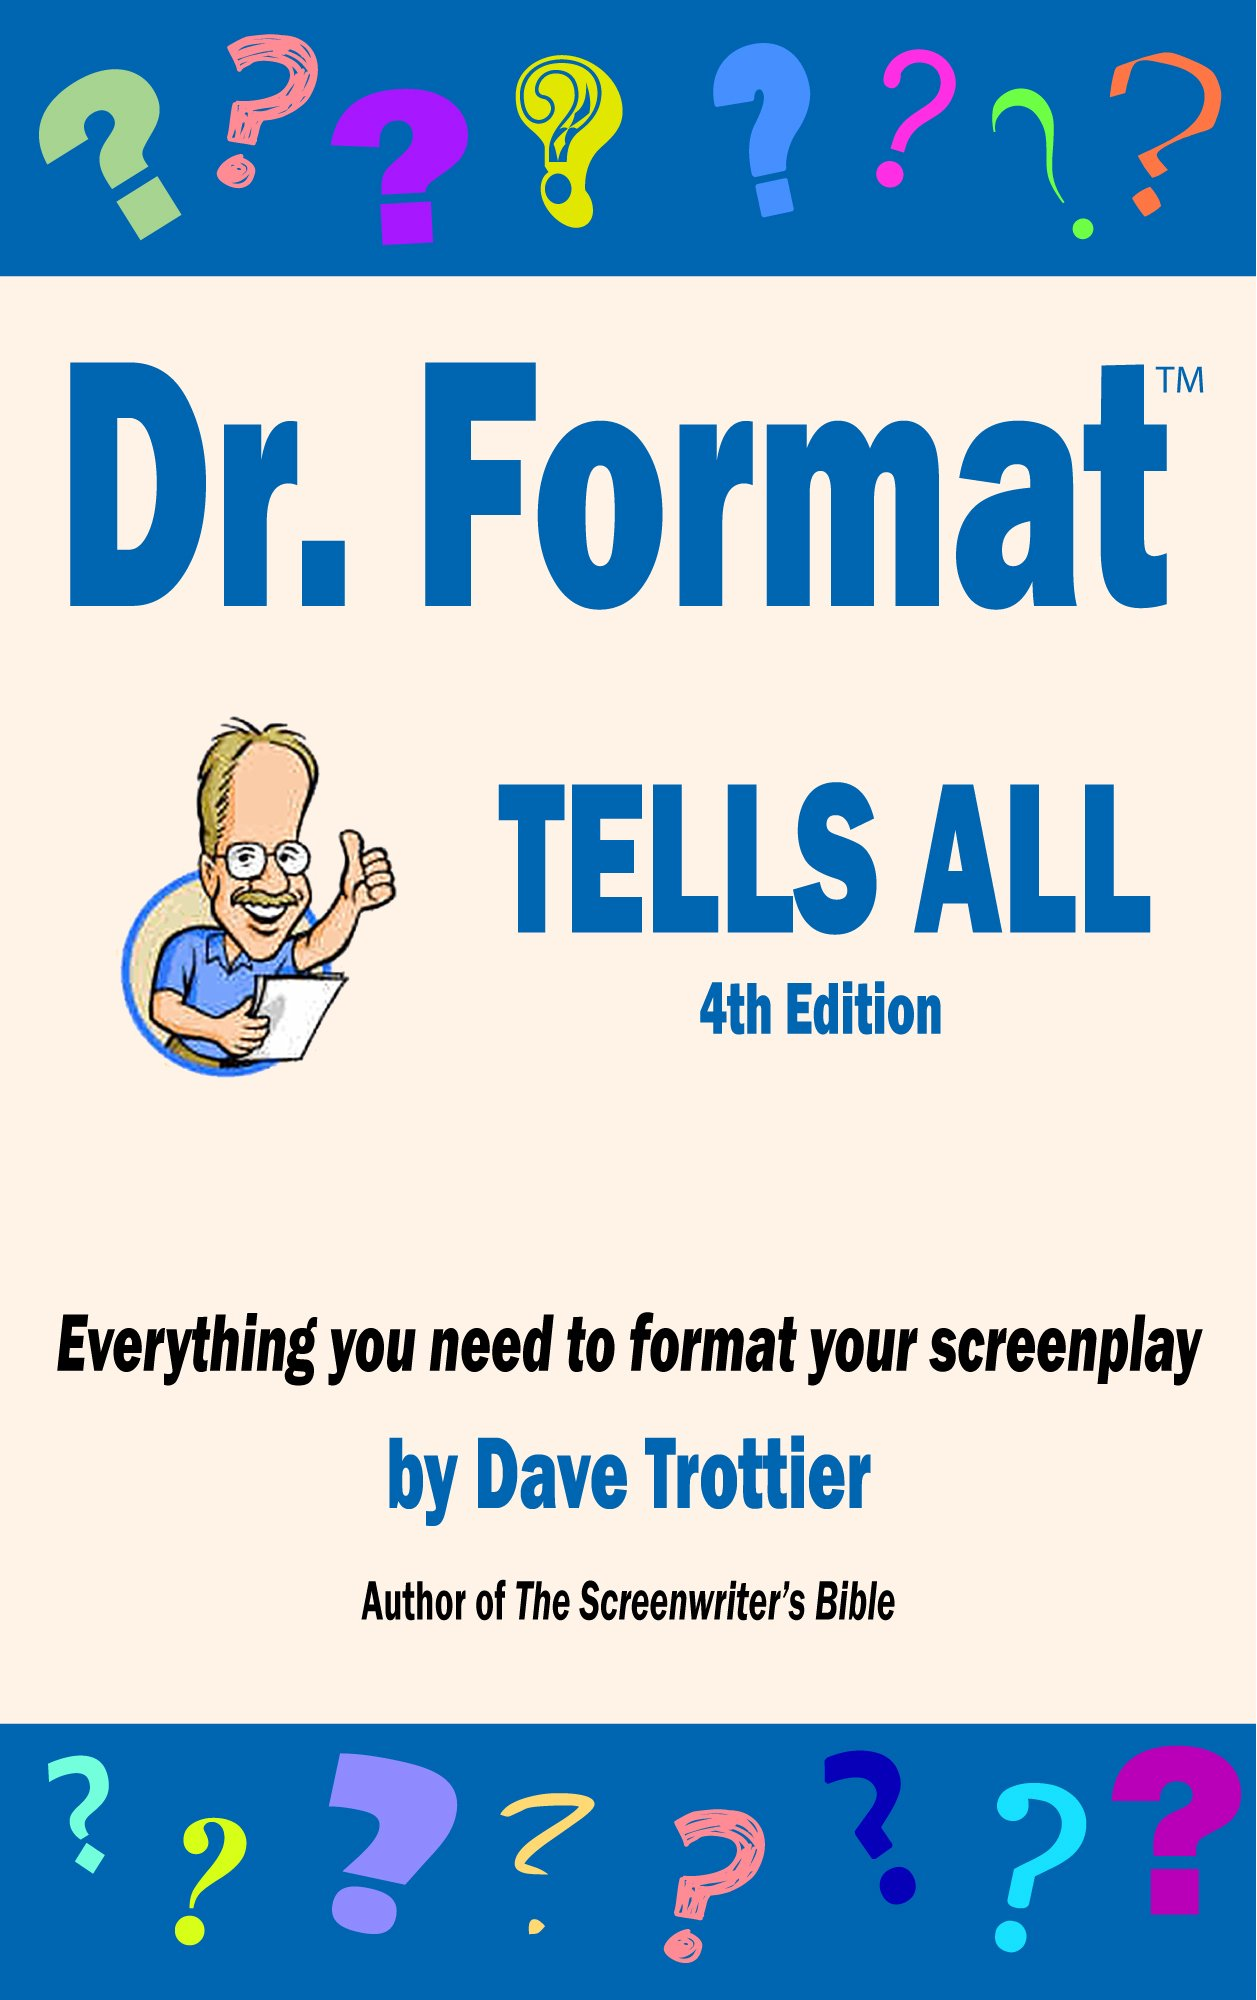 Dr. Format Tells All (4th edition) ebook